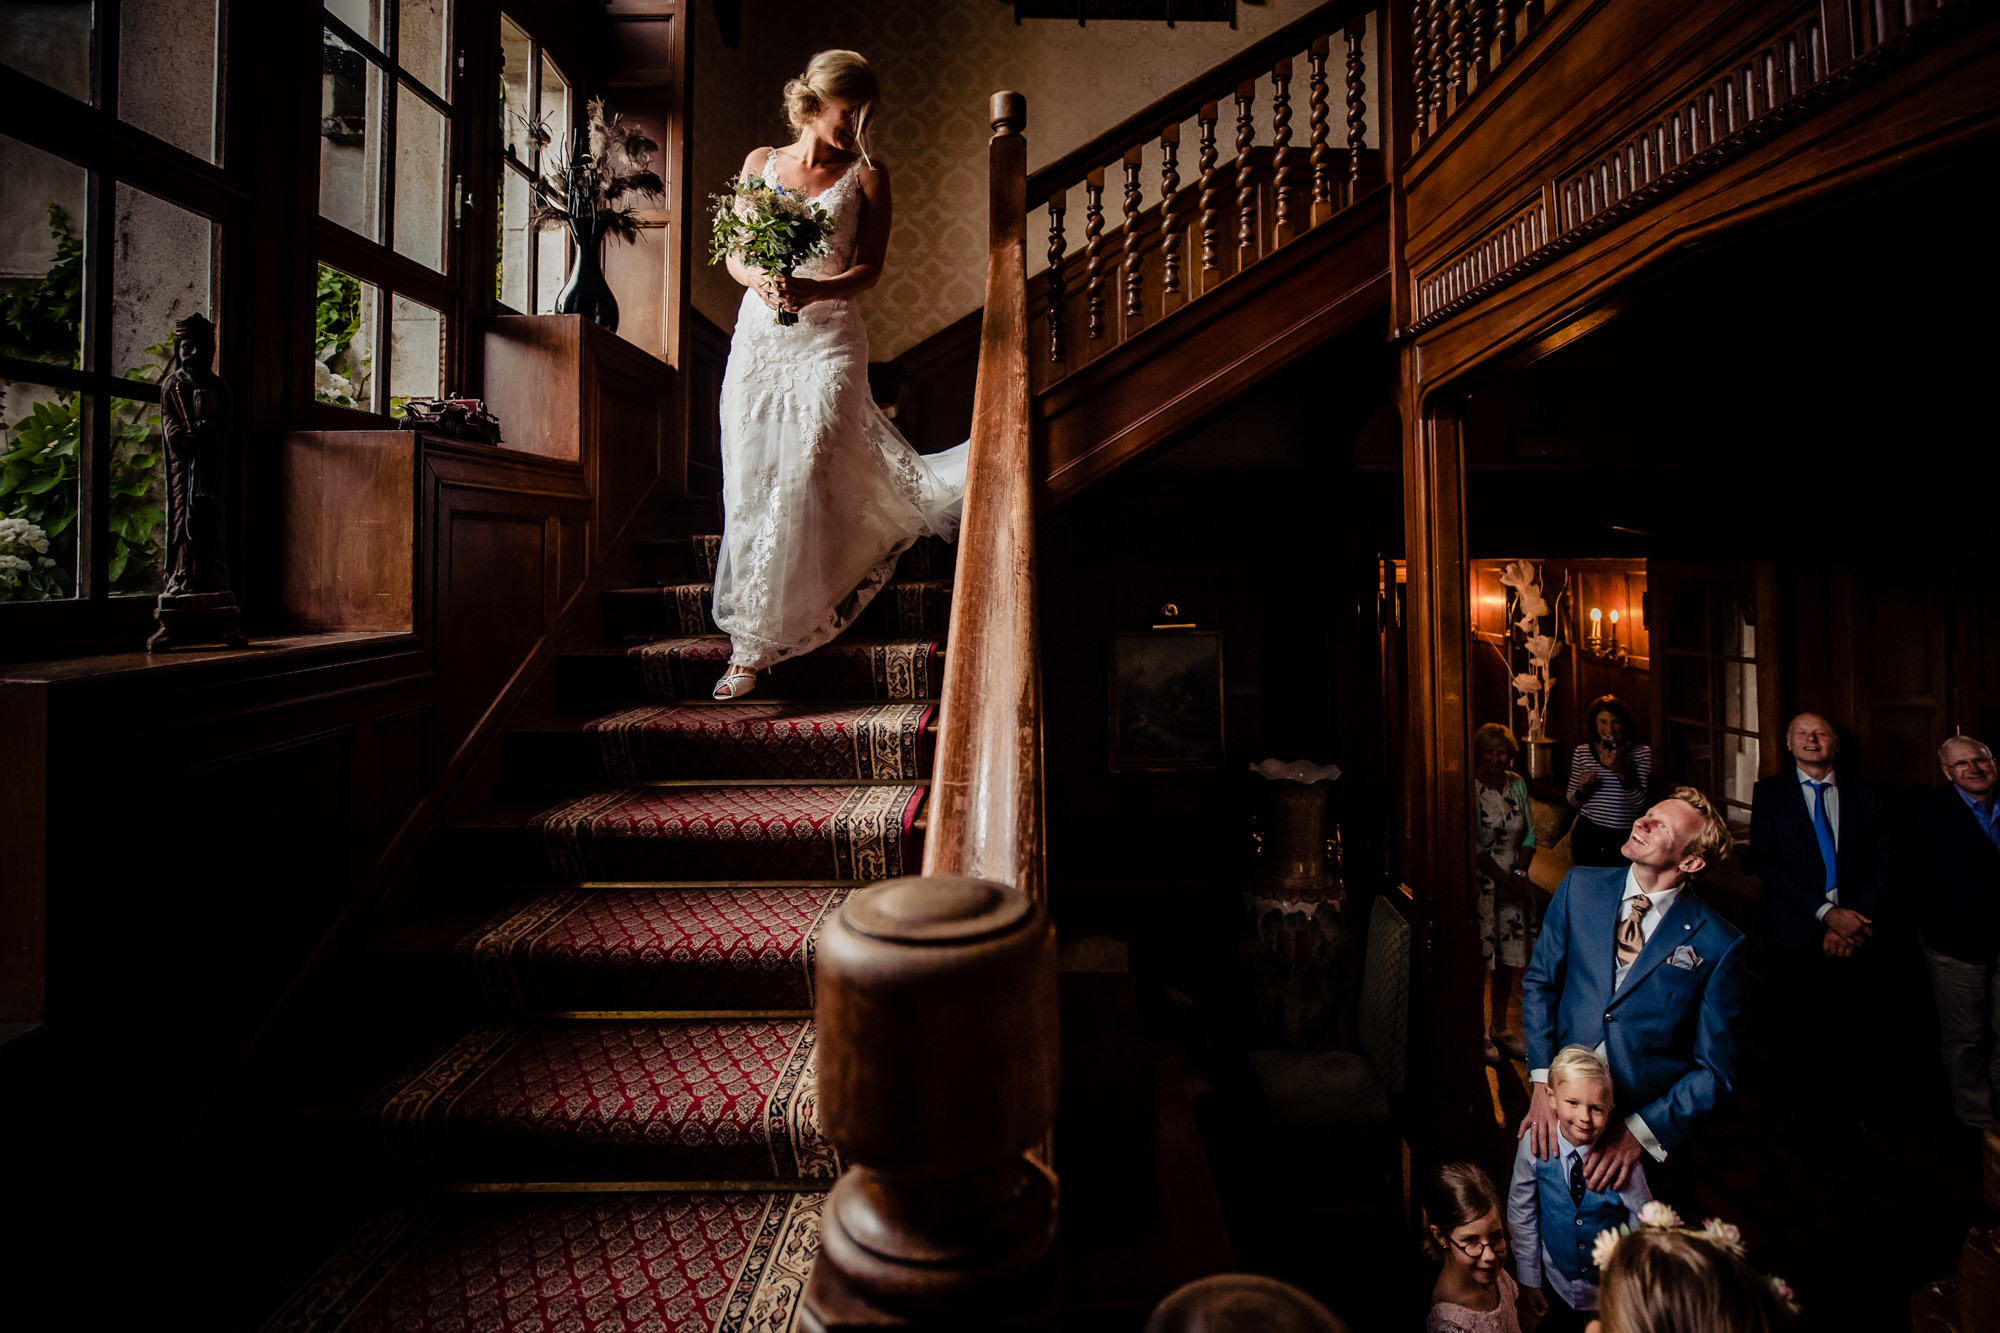 bride-descends-stairs-to-waiting-guests-worlds-best-wedding-photos-eppel-photography-weert-netherlan